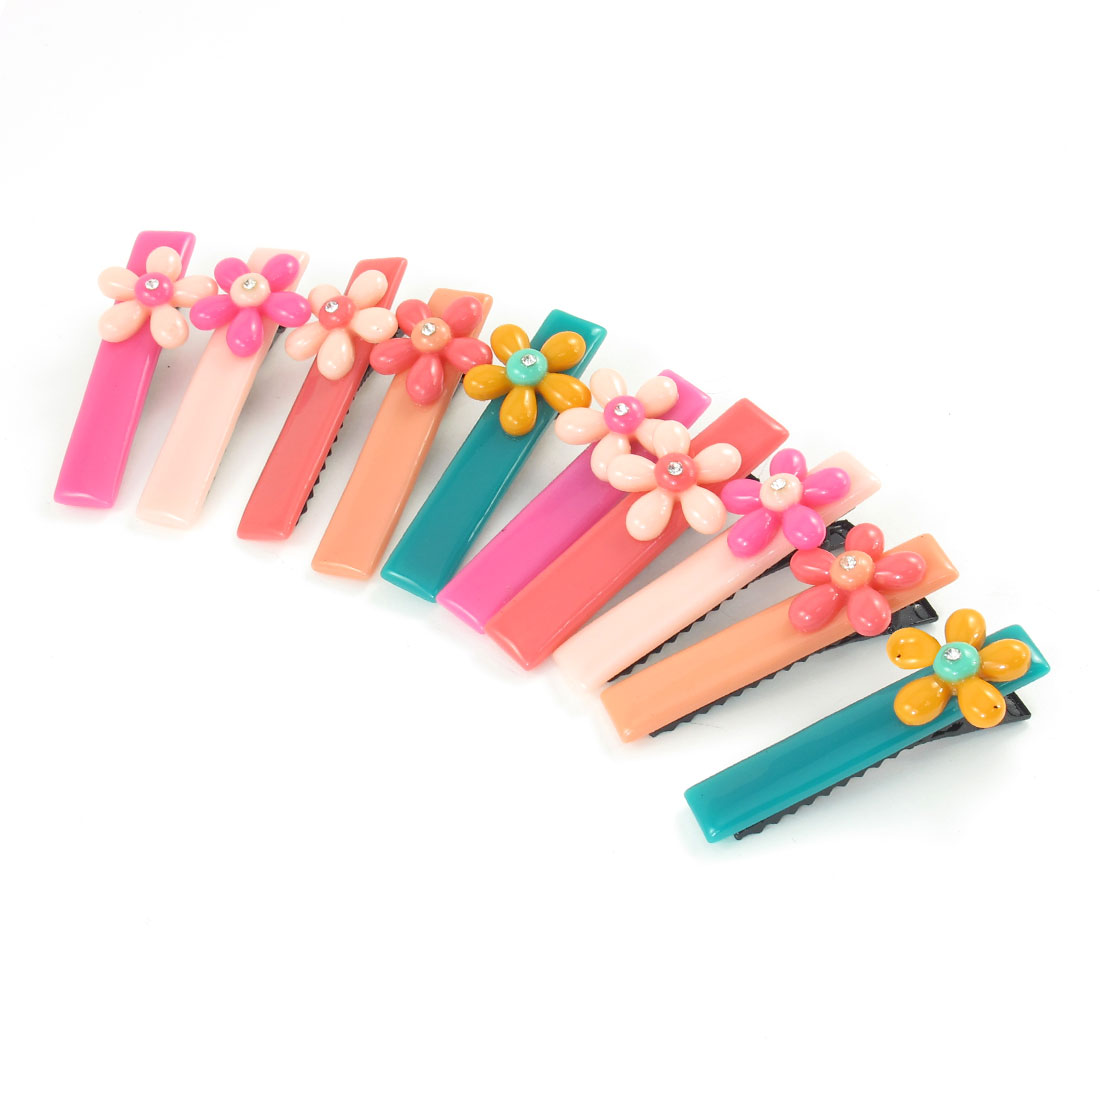 5 Pair Colorful Rhinstone Inlaid Flower Decor Hair Alligator Clip Hairclip